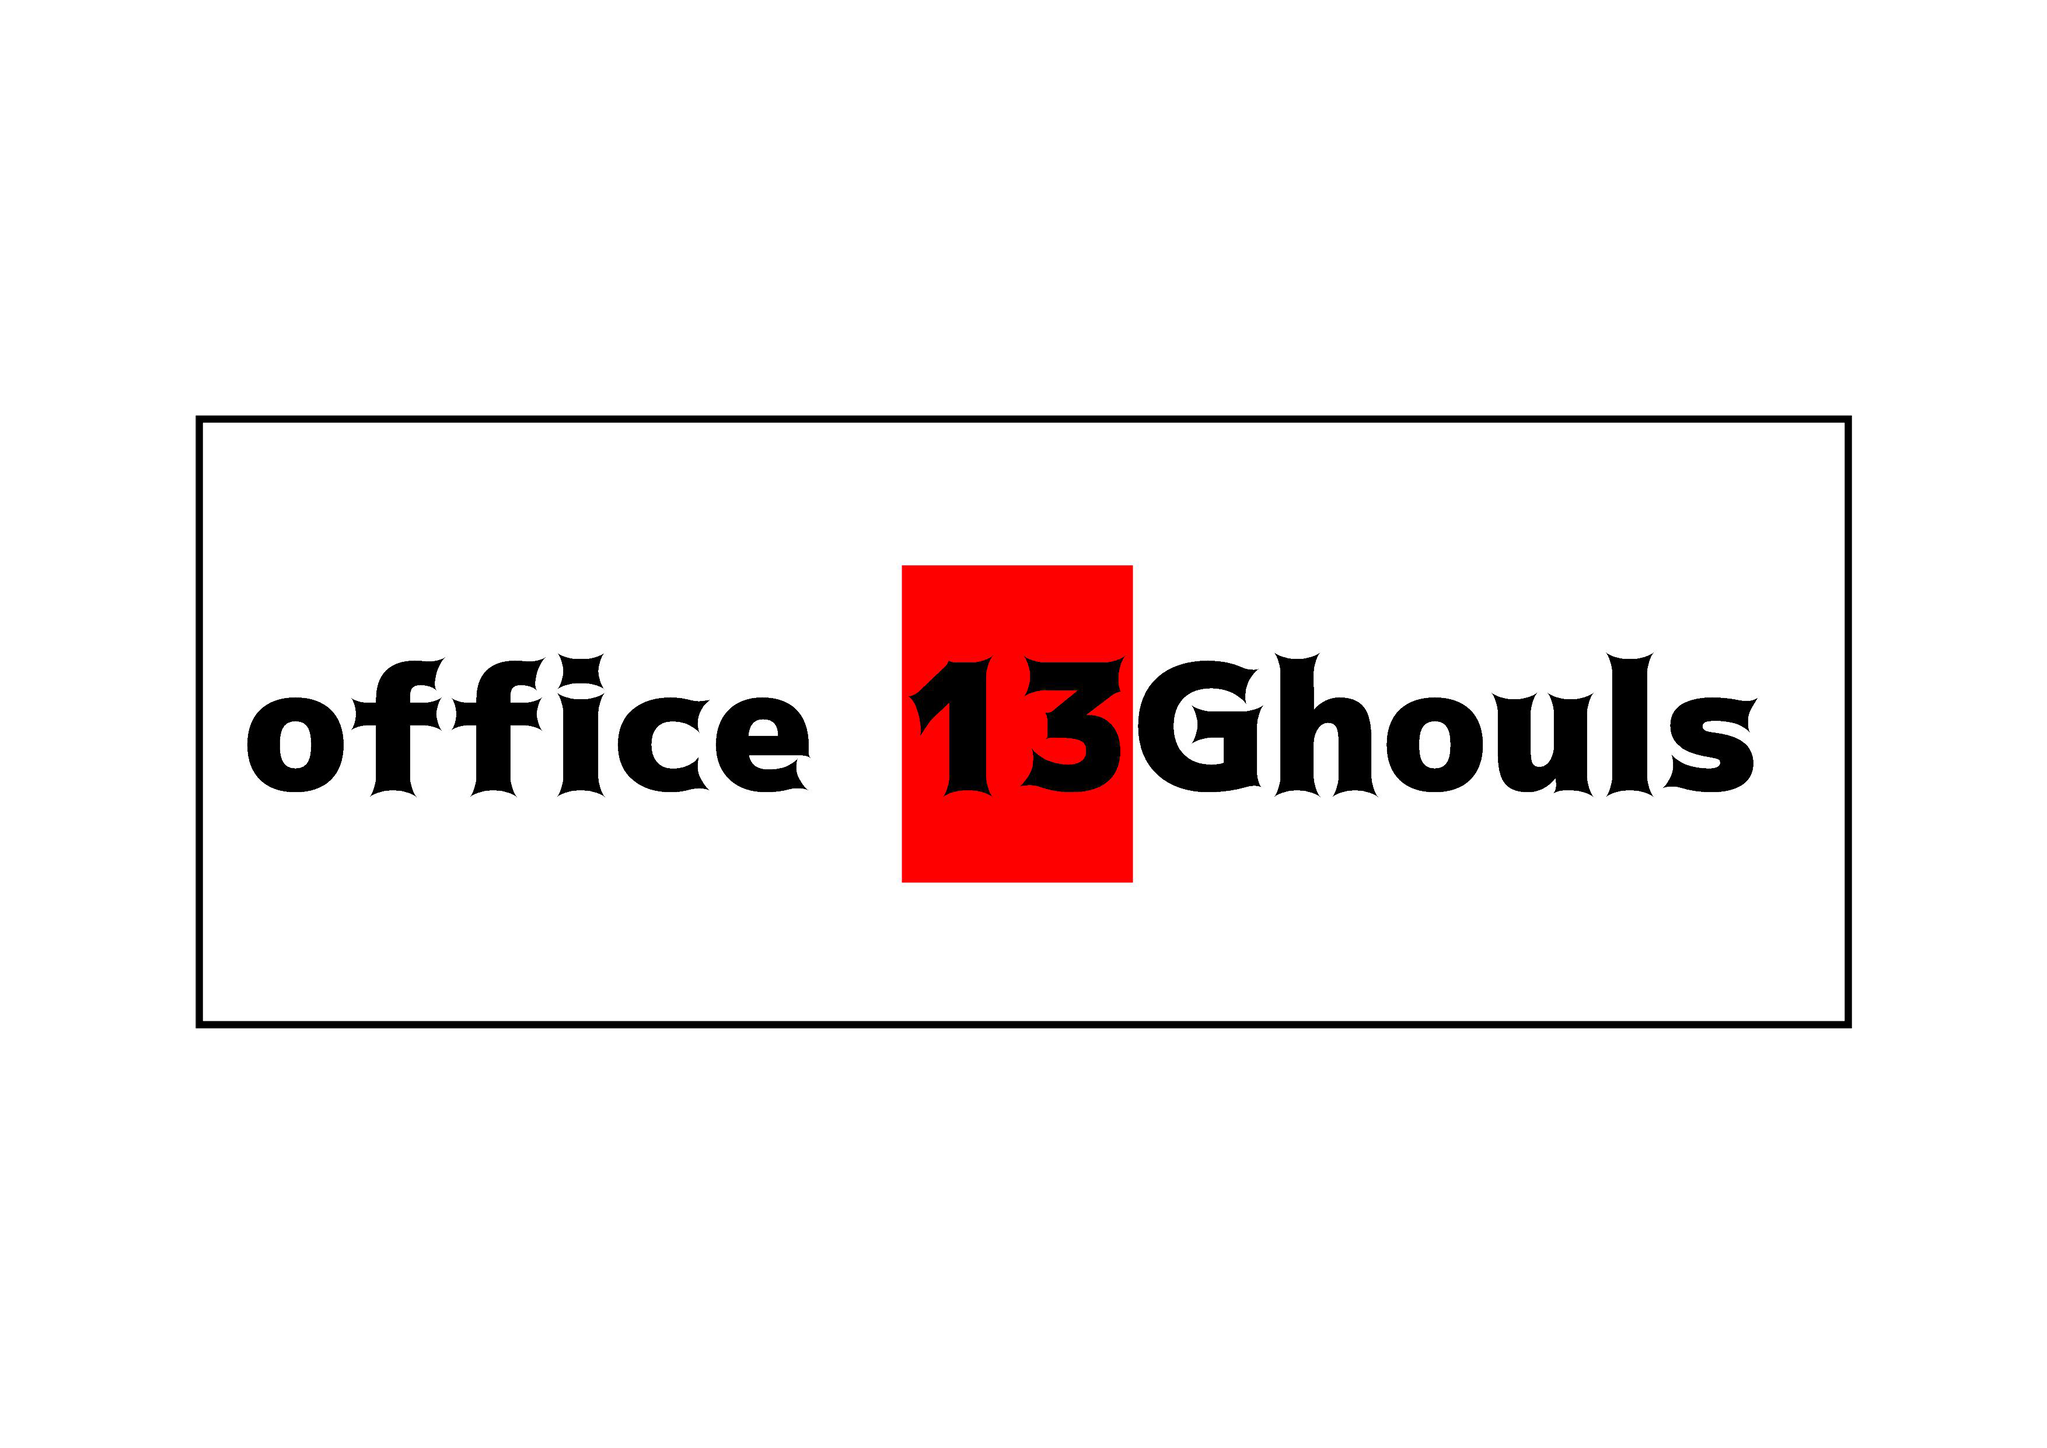 13 Ghouls Store